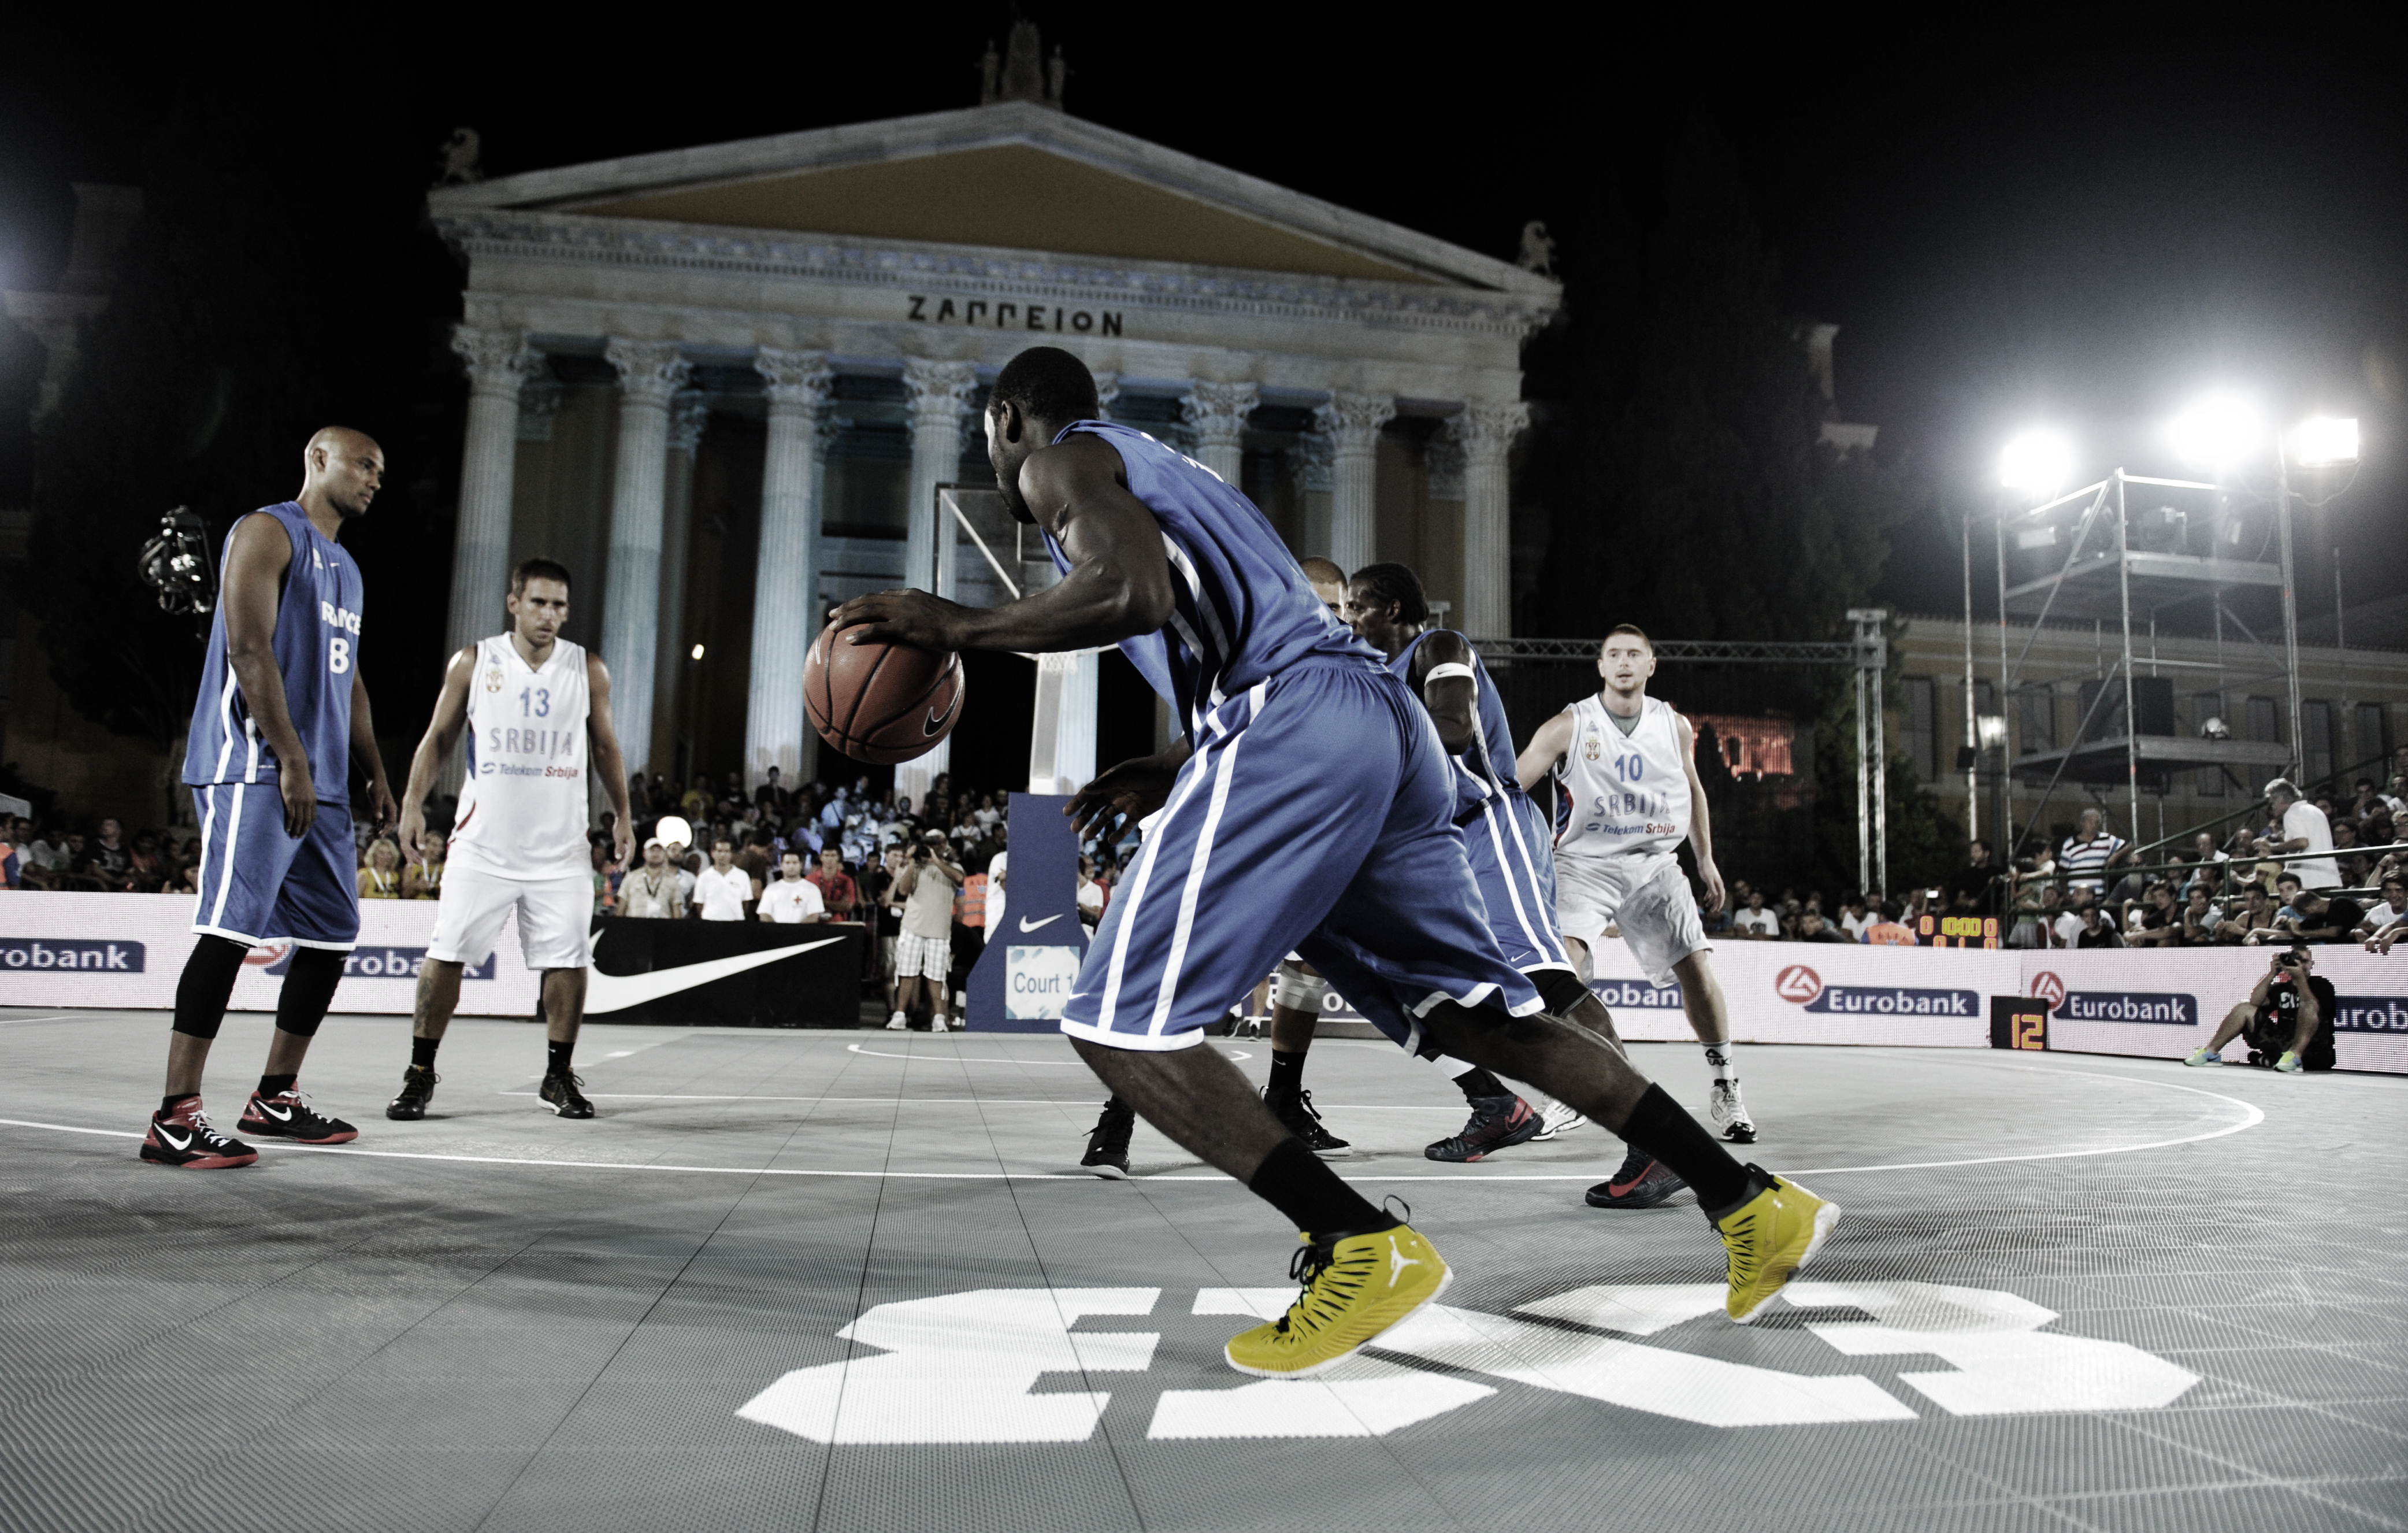 FIBA 3x3 Tournament on a Sport Court Basketball Court